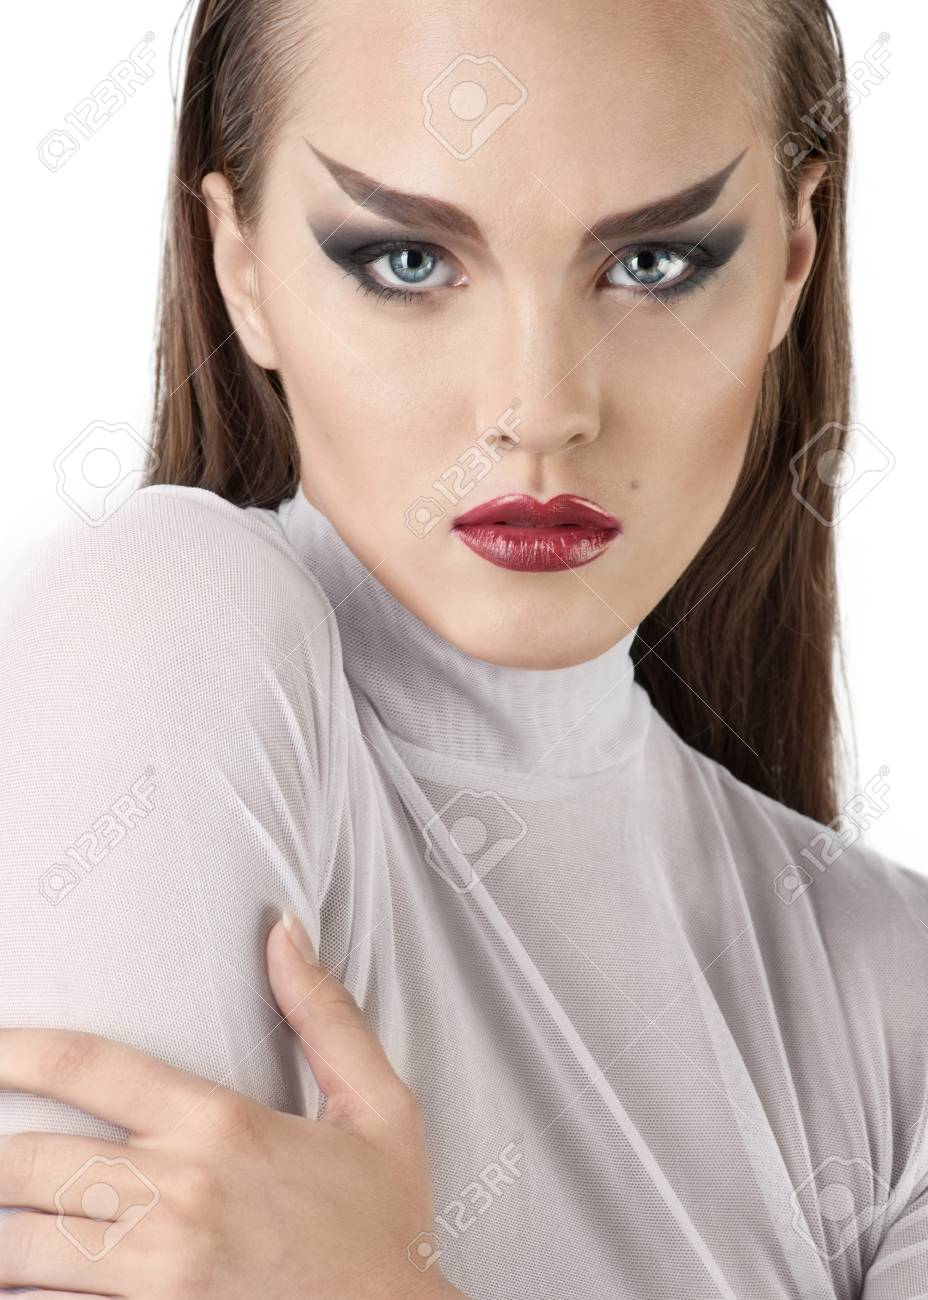 Fashion studio shot of young and beautiful woman looking at camera. Wearing white blouse. (Professional makeup and hair style). Stock Photo - 10841277